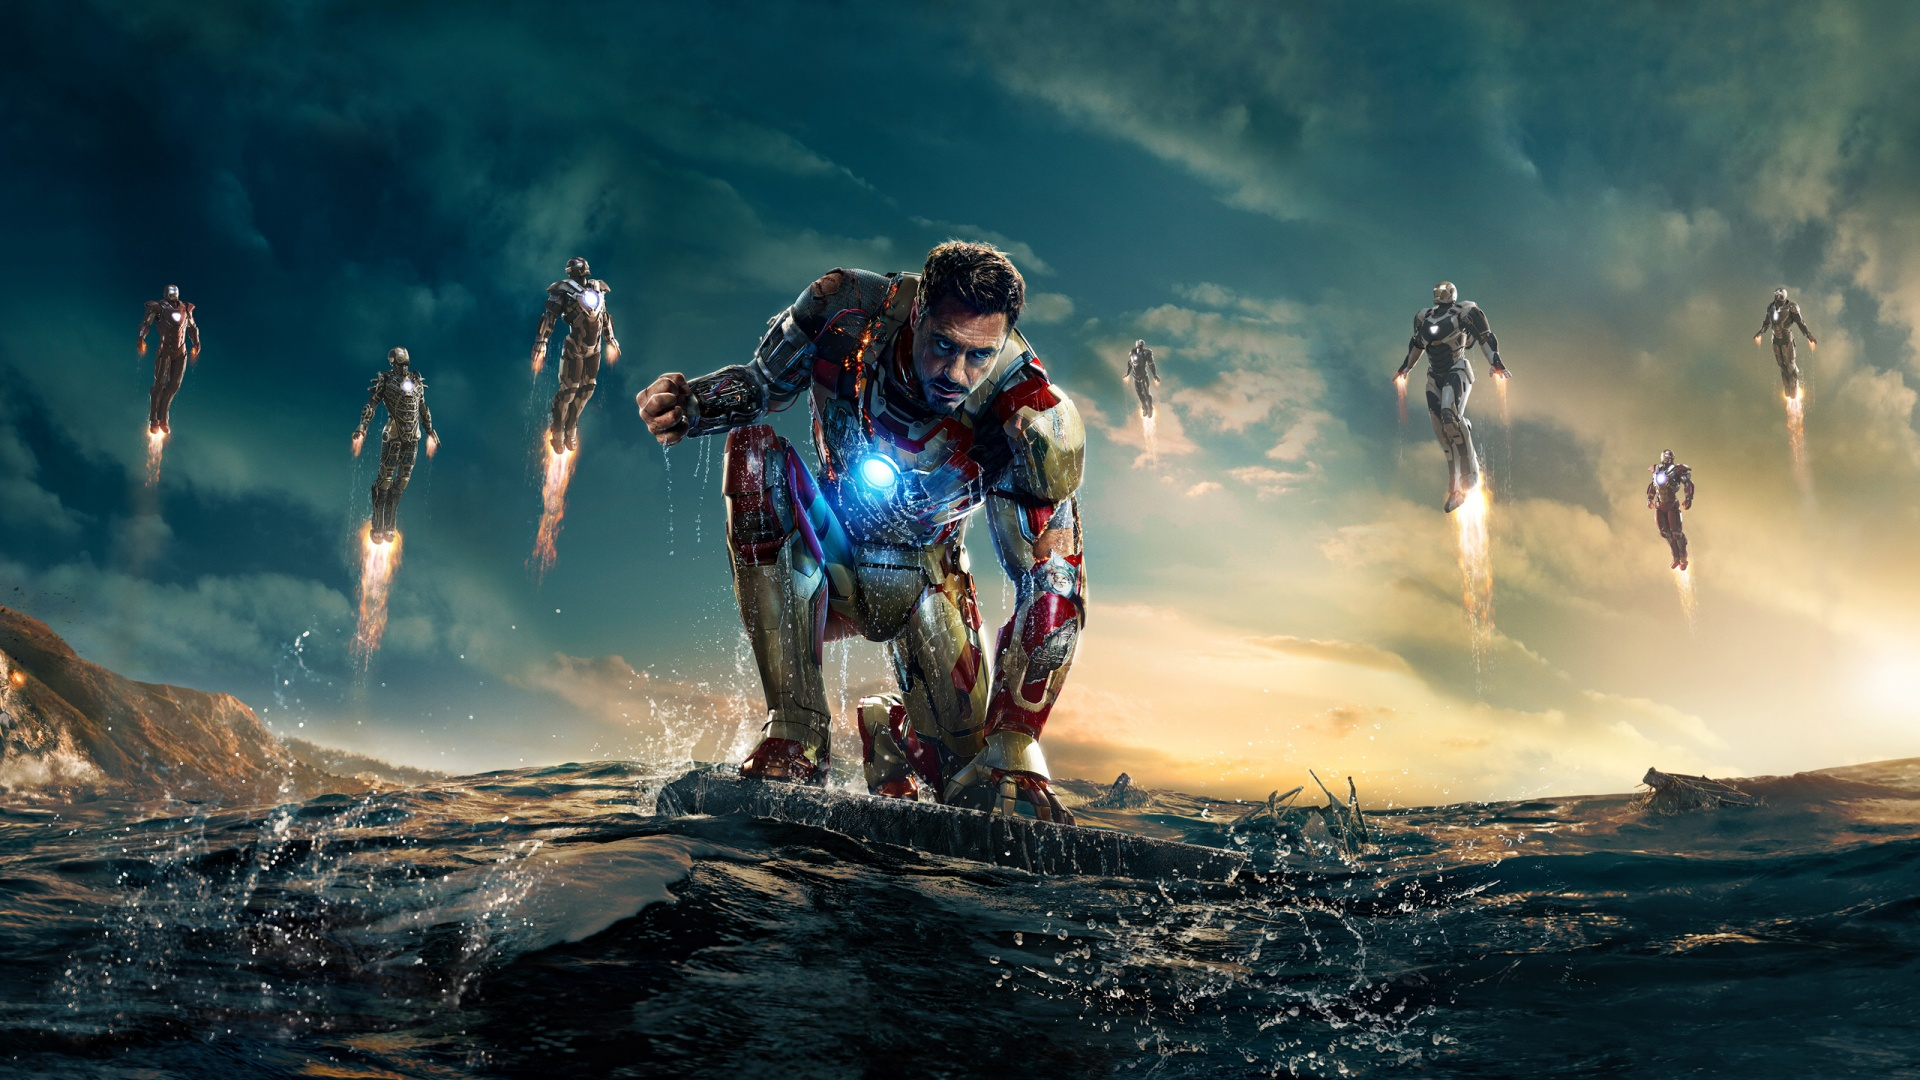 marvel live-action movies images iron man 3 hd wallpaper and